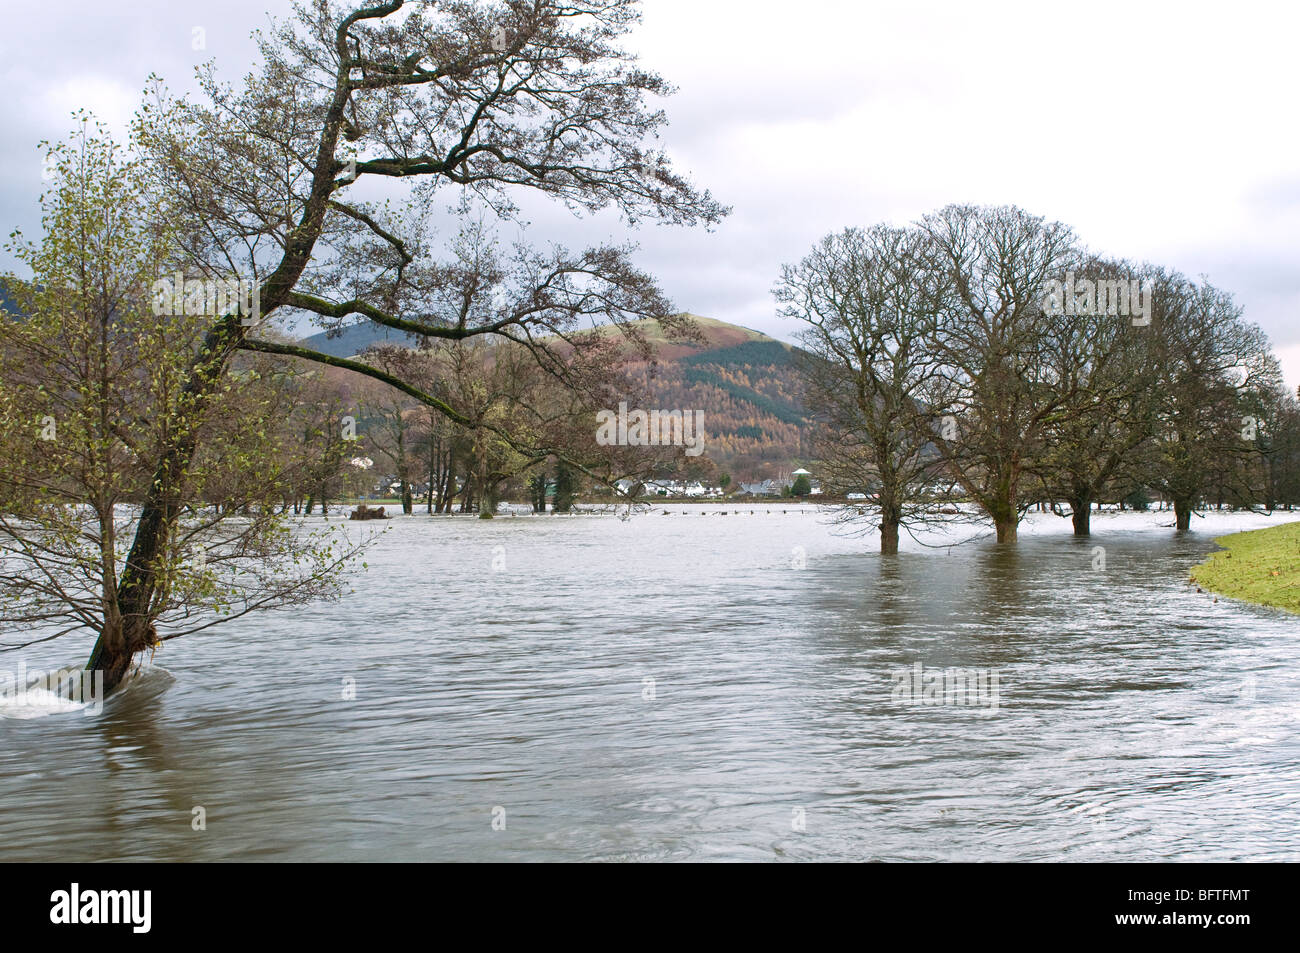 Floodwater near Keswick Cumbria during the floods of November 2009, between Bassenthwaite Lake and Derwentwater. Stock Photo